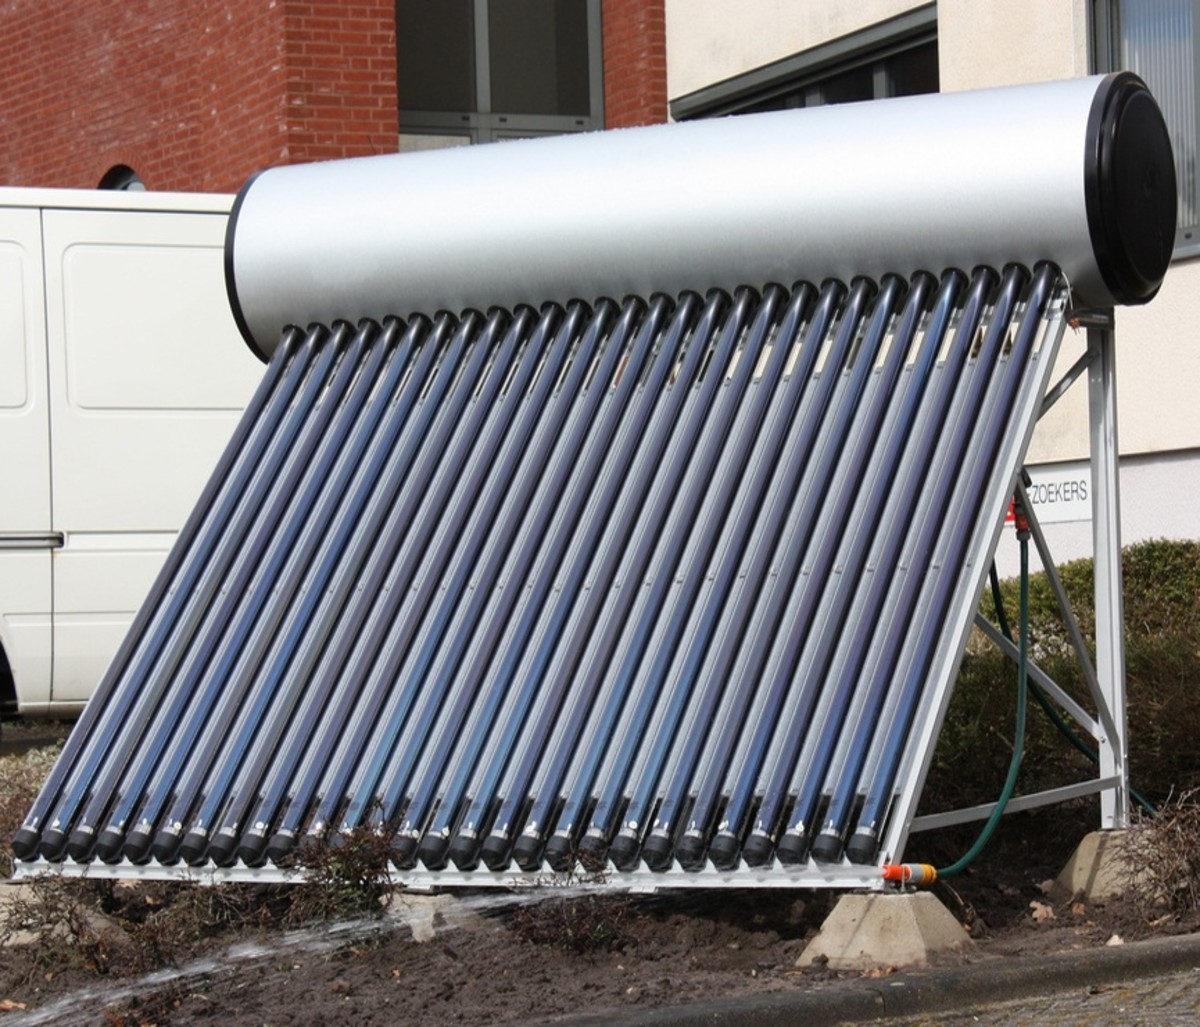 5-benefits-of-using-a-solar-water-heater